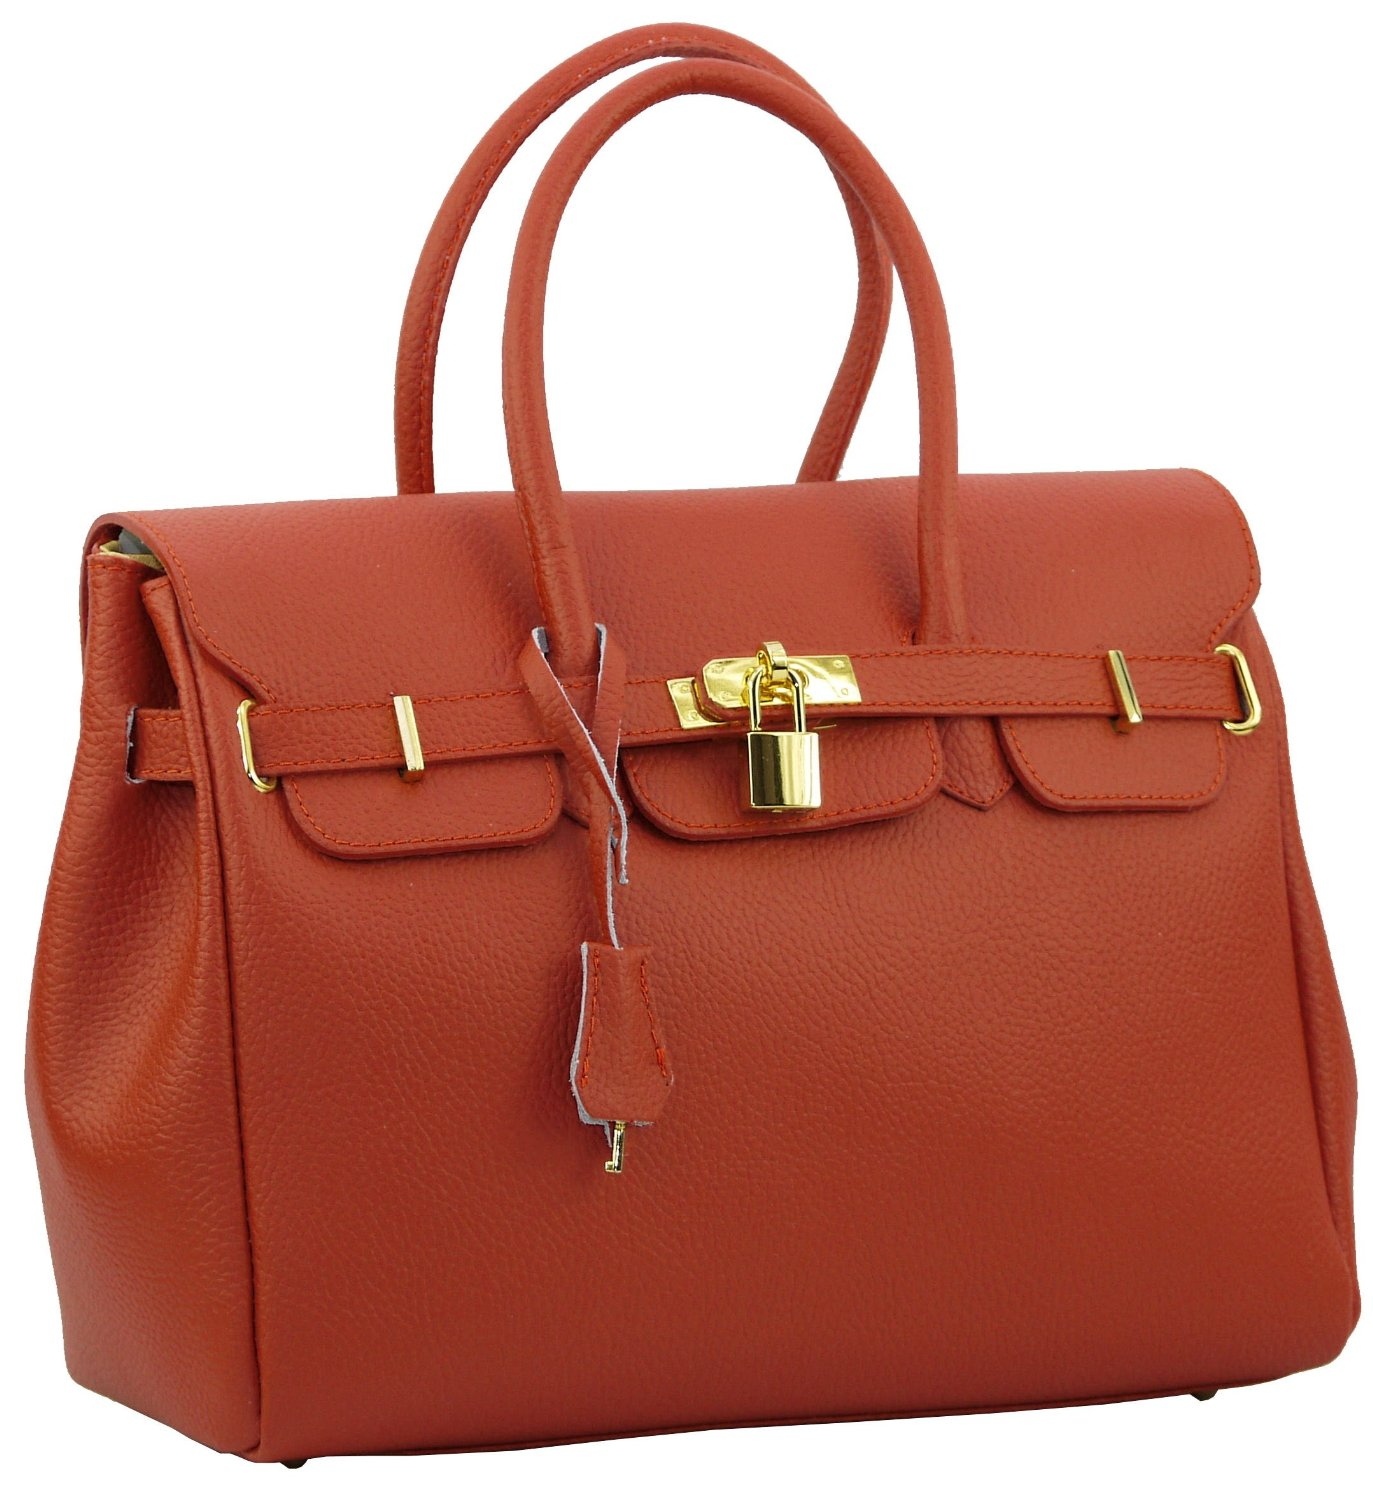 2. Real Italian Leather Brealleather 0012 Small Tangerine Made in Florence, Italy.